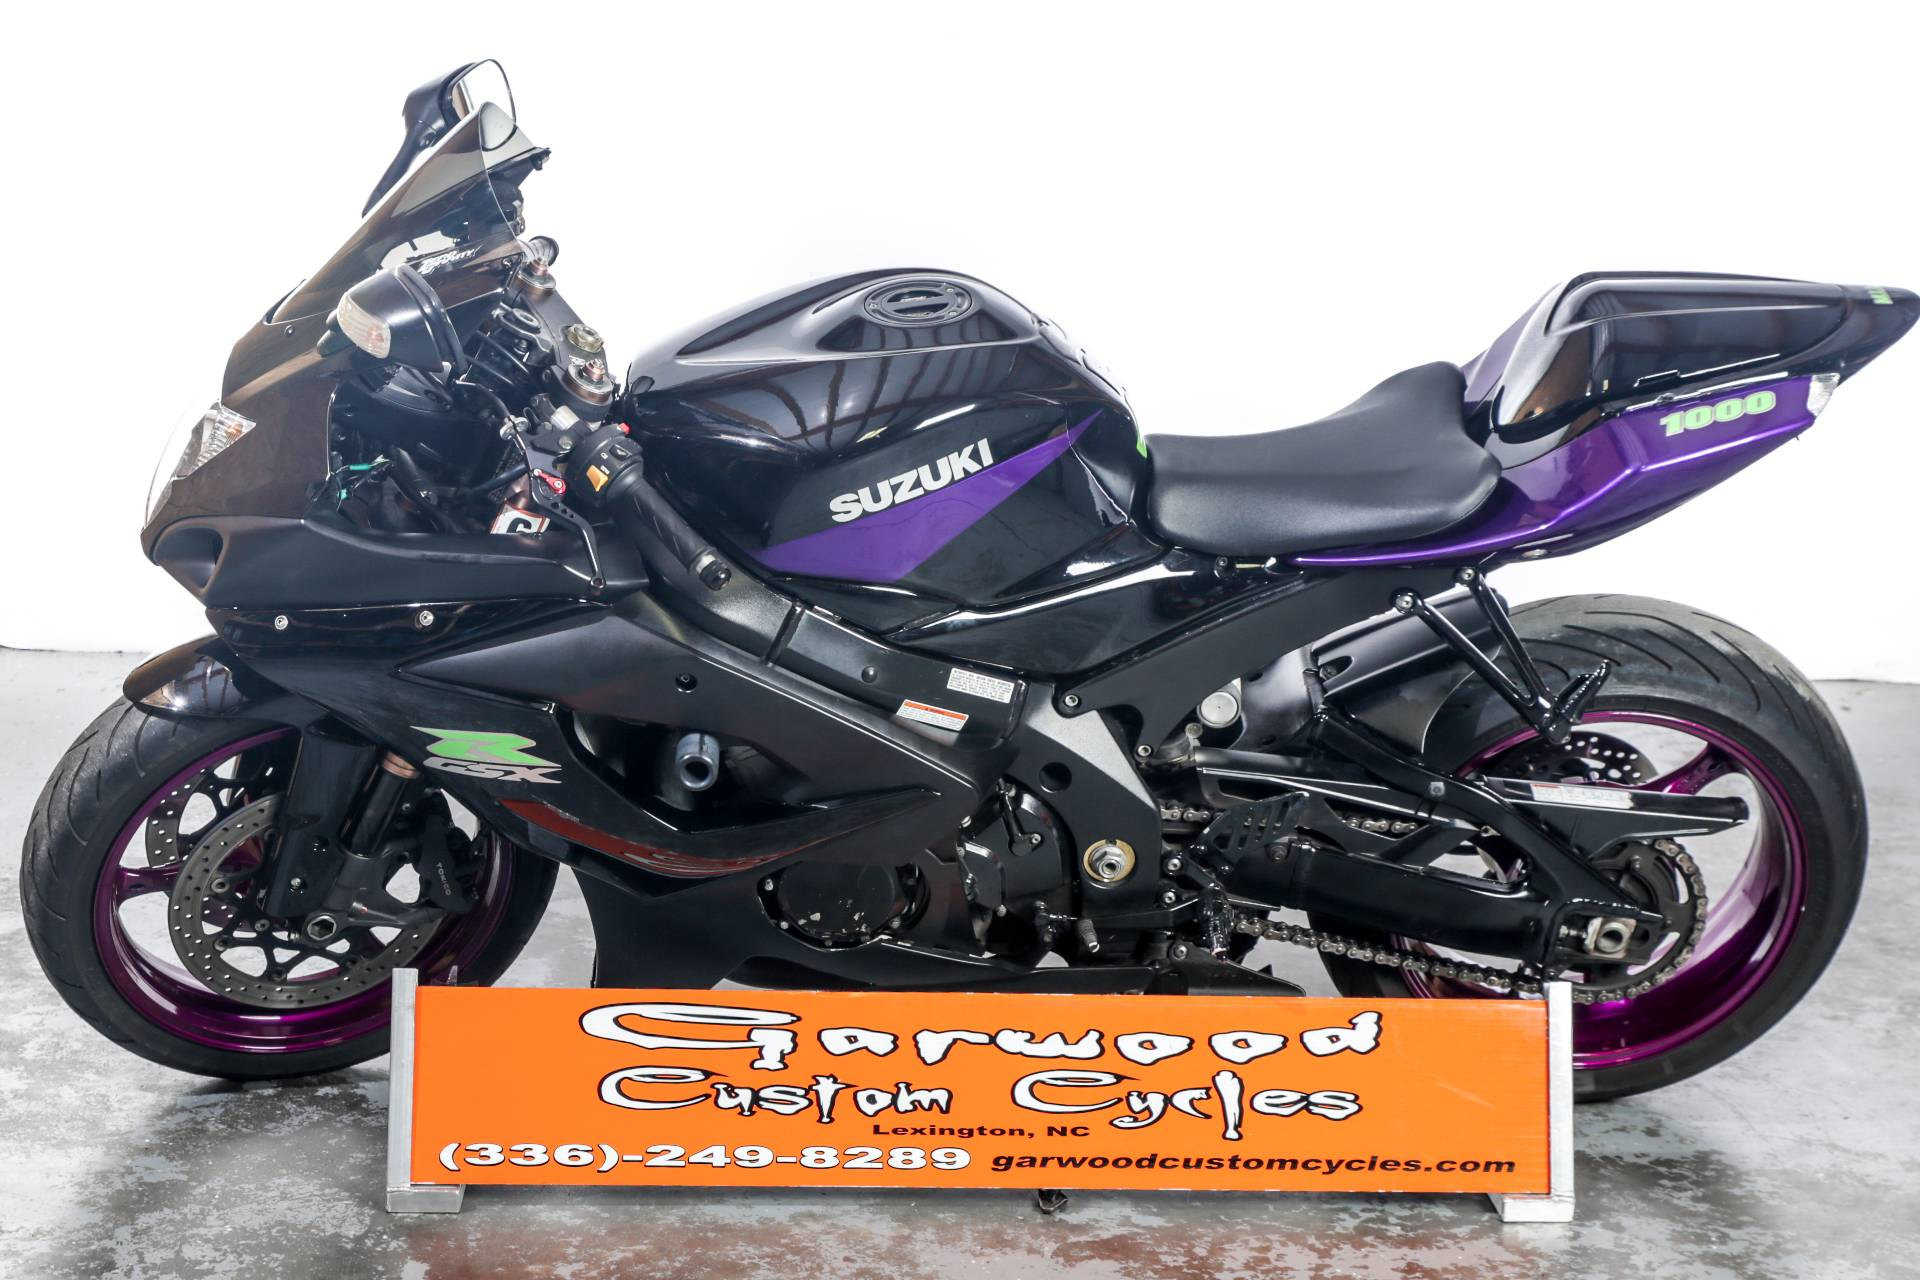 2005 Suzuki GSXR1000 in Lexington, North Carolina - Photo 5